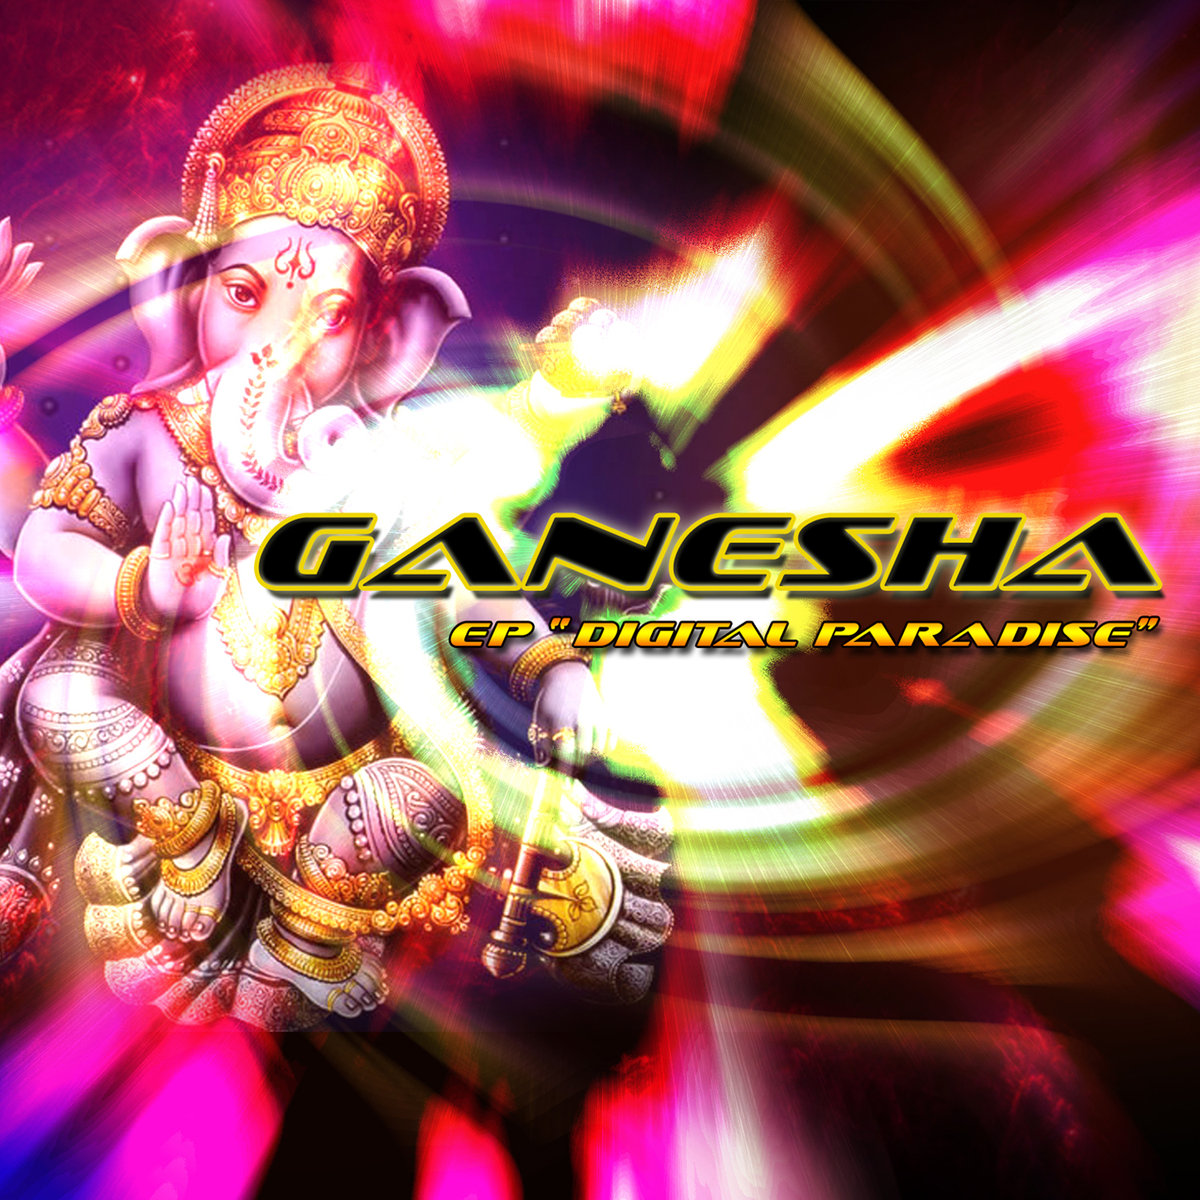 Ganesha - Space Love @ 'Digital Paradise' album (electronic, goa)